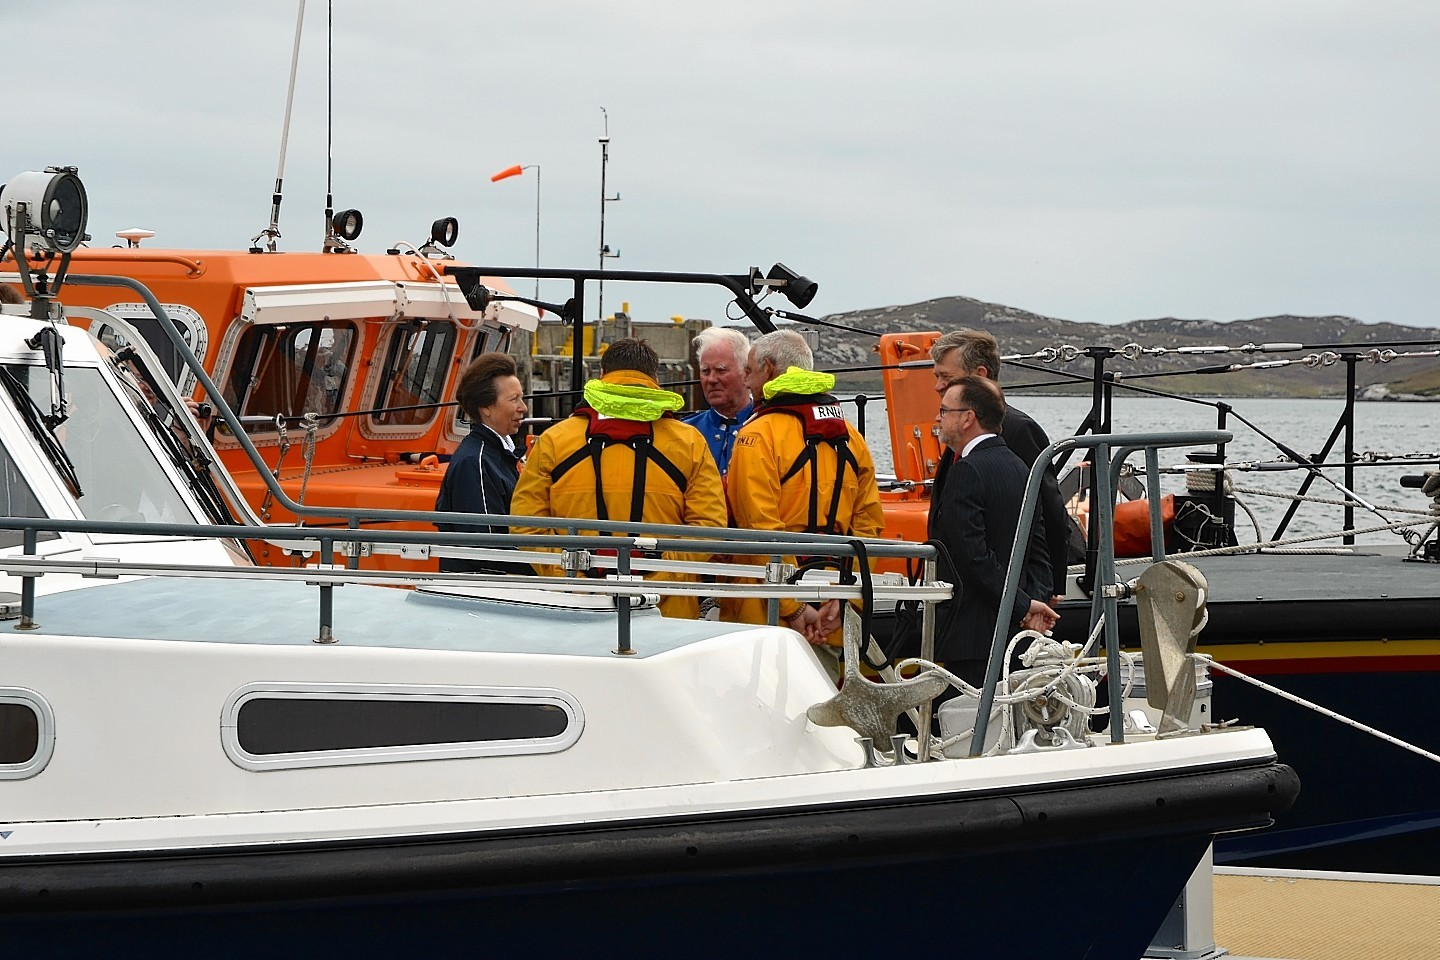 Police investigate a boat sinking in Stornoway Harbour